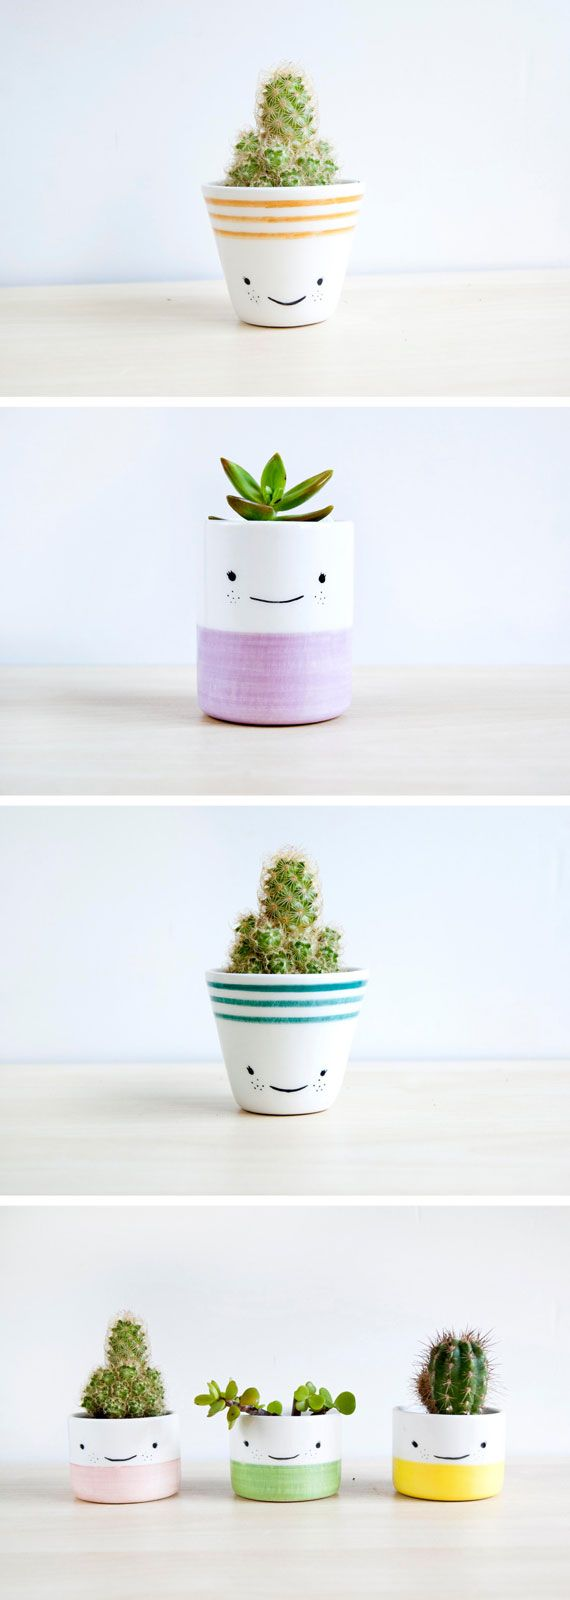 DIY plant pot inspiration